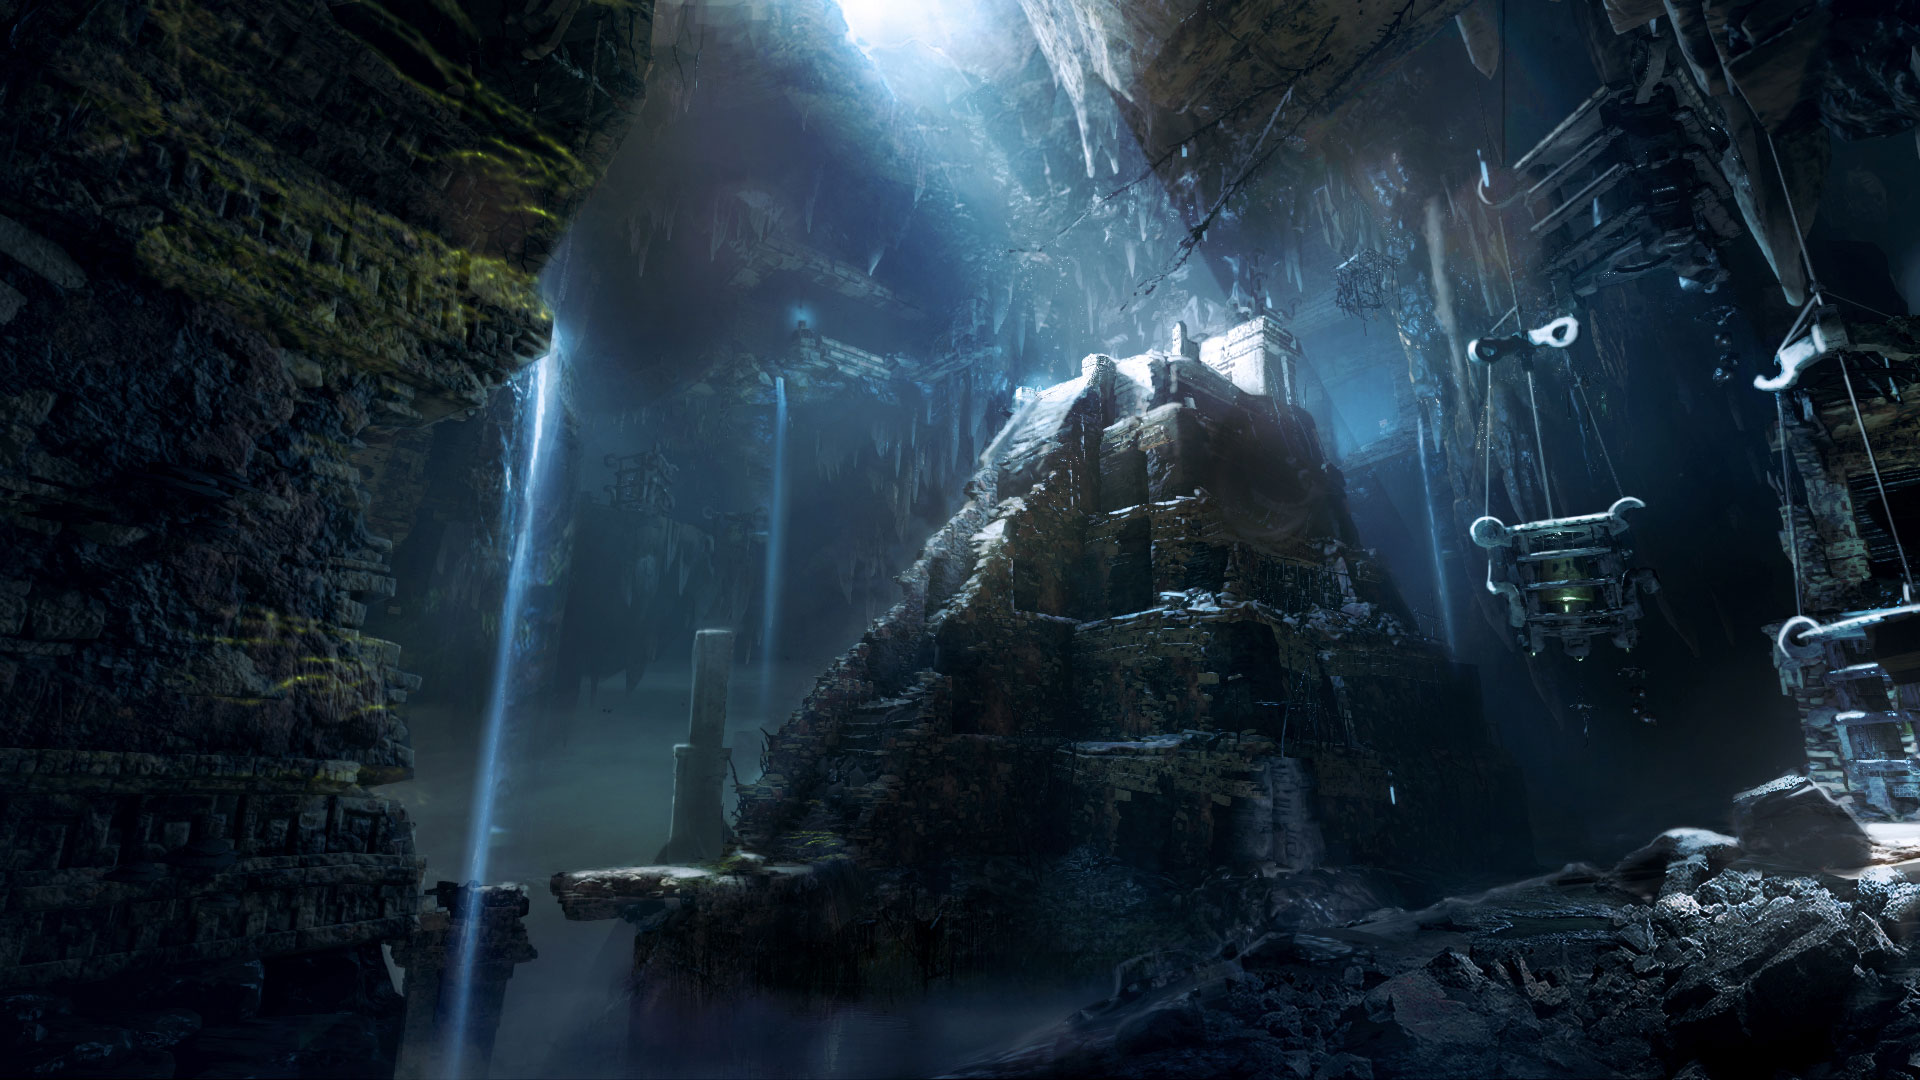 Grotte, python rocheux au centre avec escalier en pierre Shadow of the Tomb Raider artwork